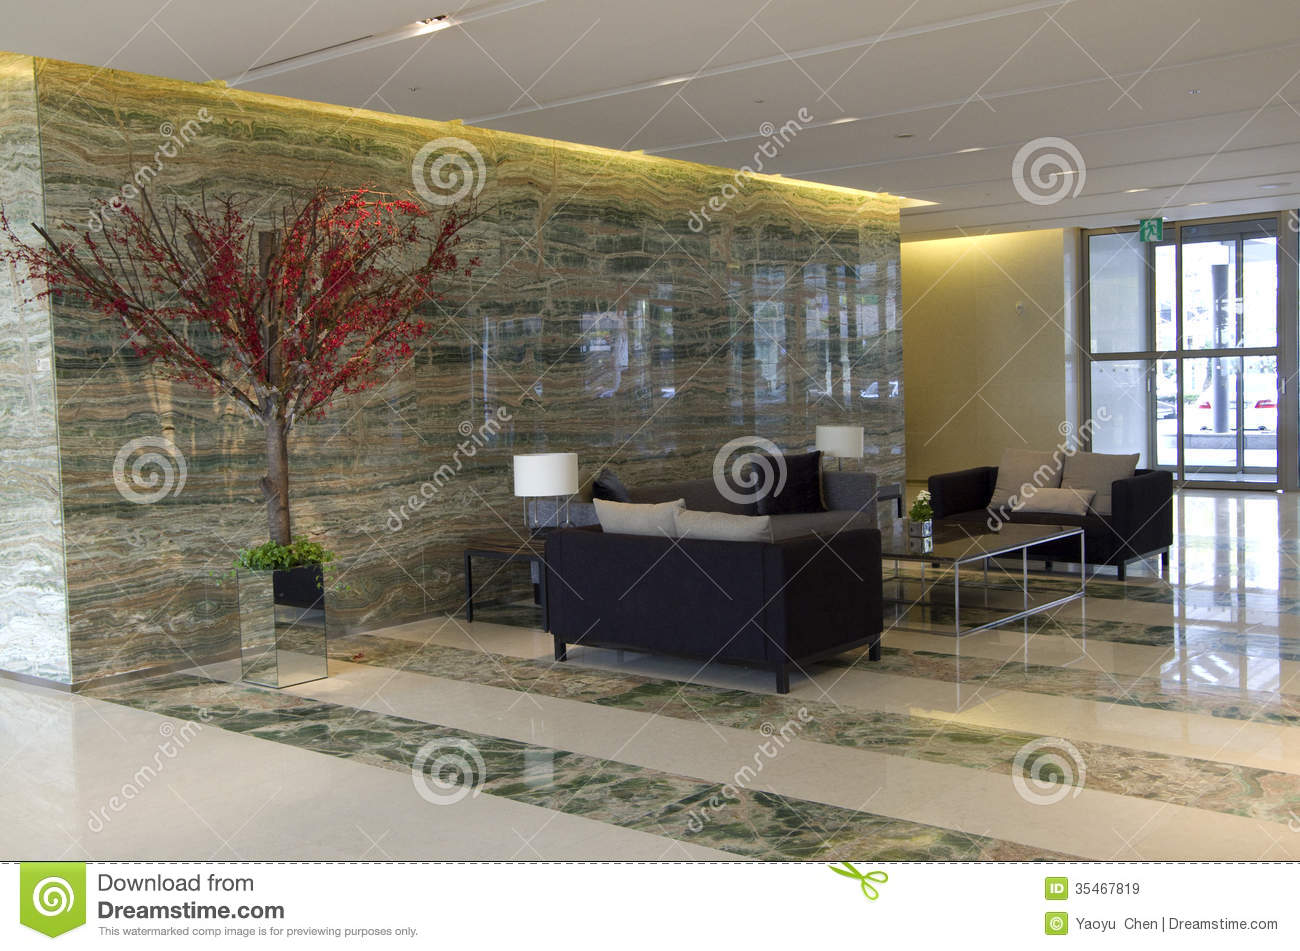 Hotel lobby furniture - Modern Luxury Hotel Lobby Furniture Royalty Free Stock Images